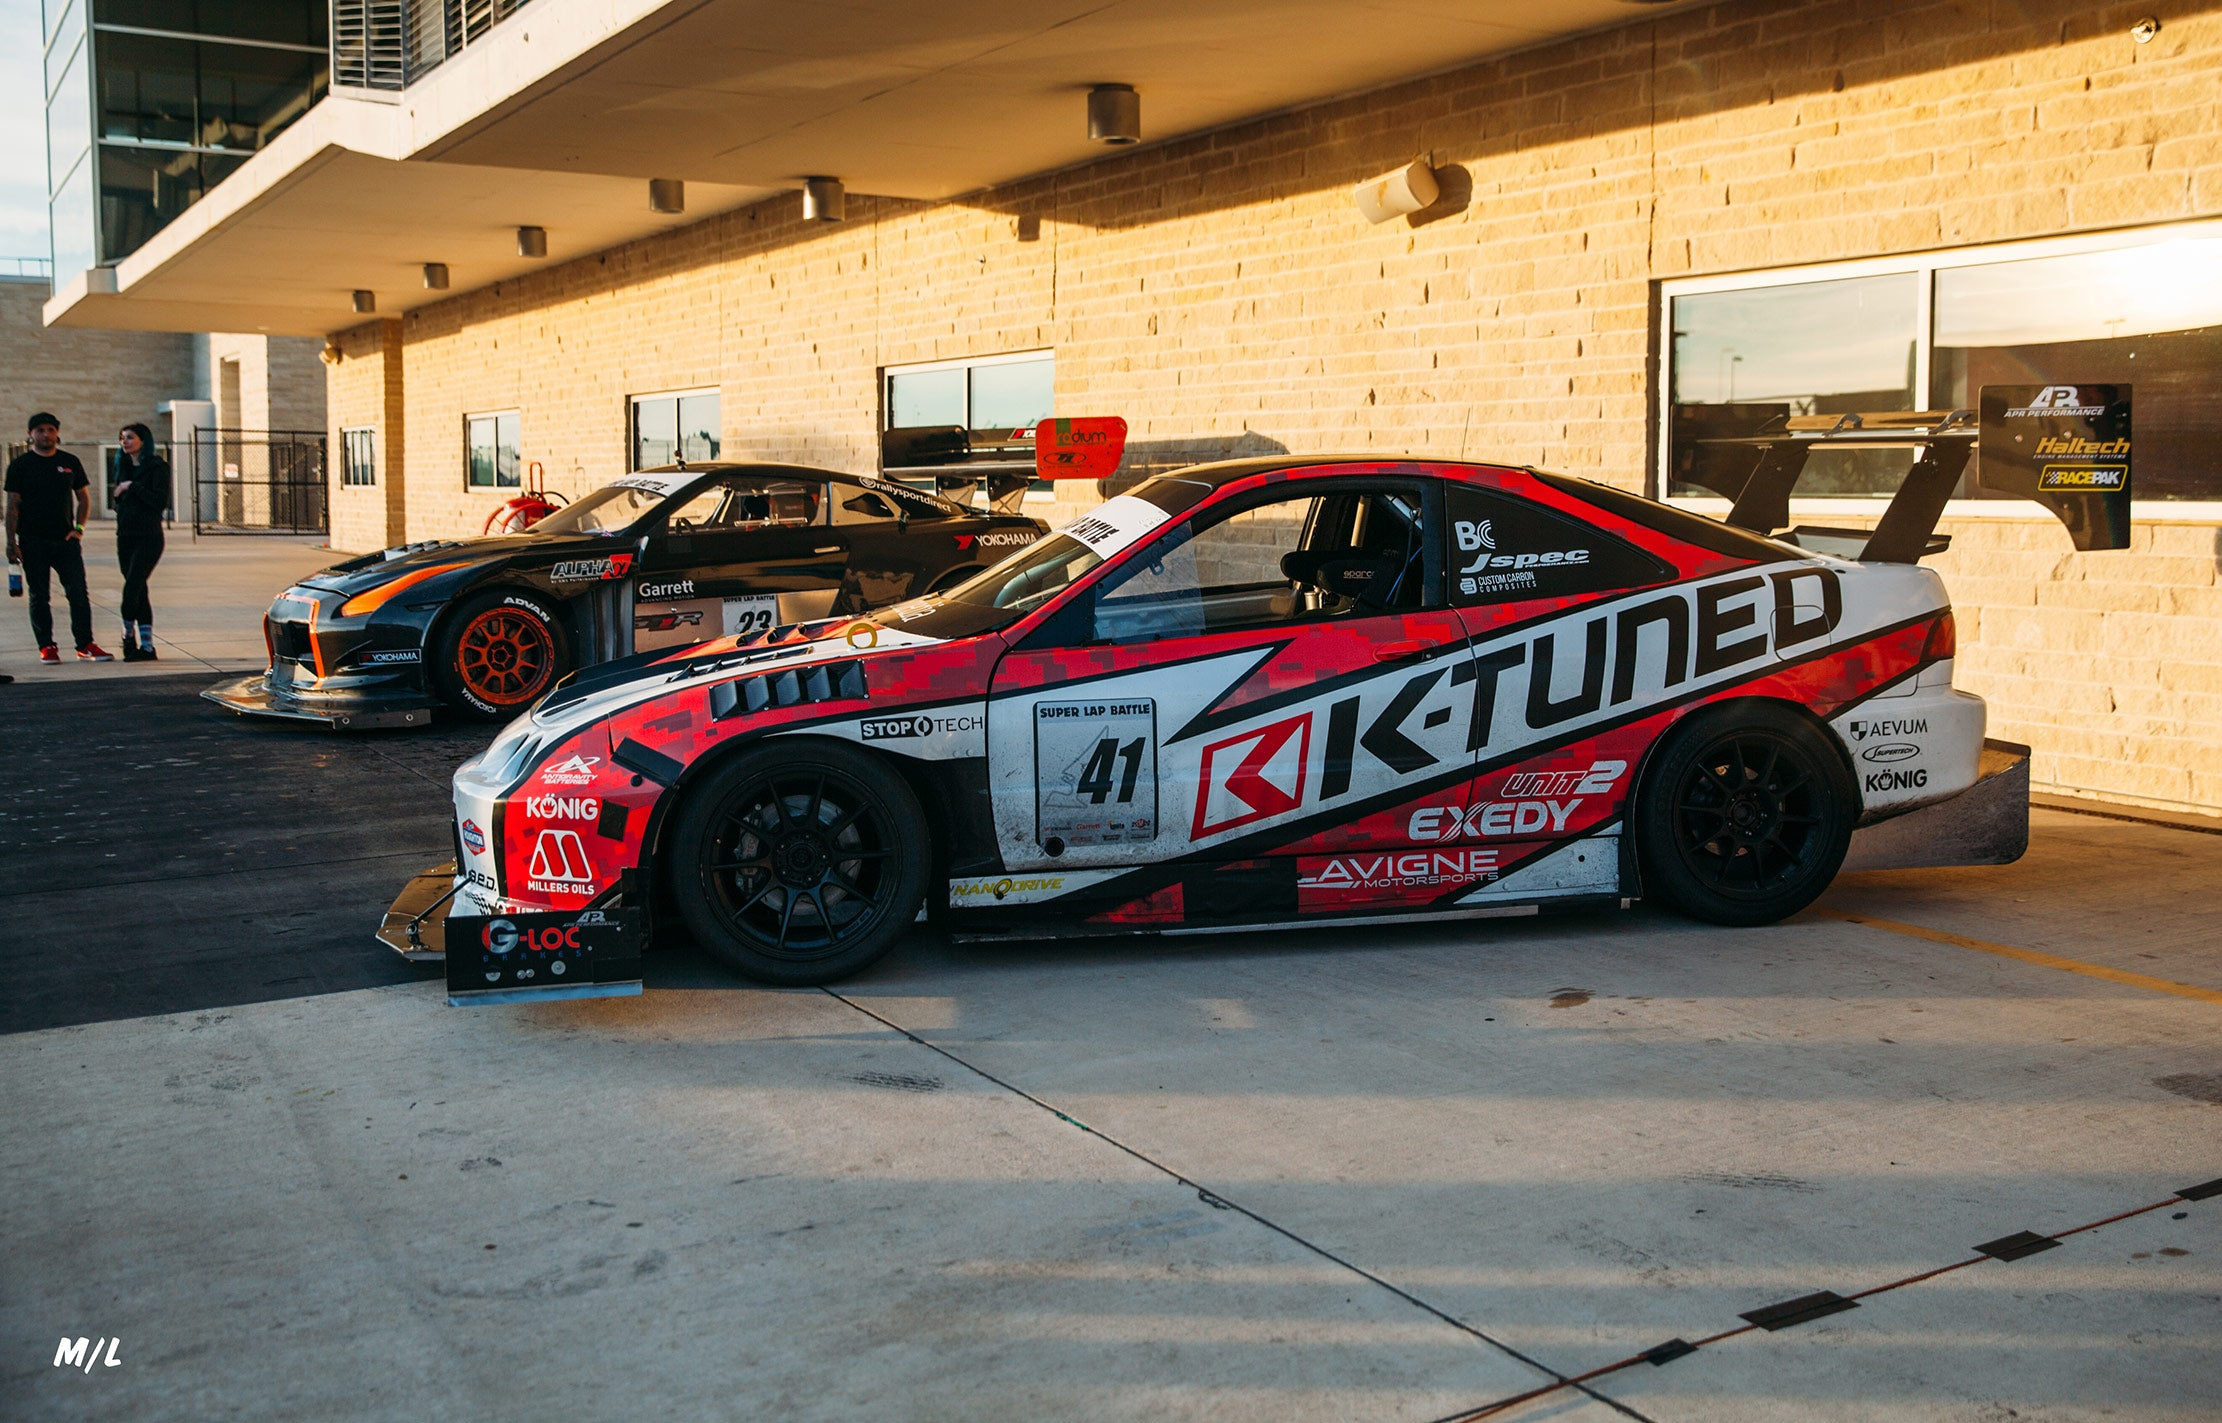 James Houghton K-Series FWD Time Attack honda